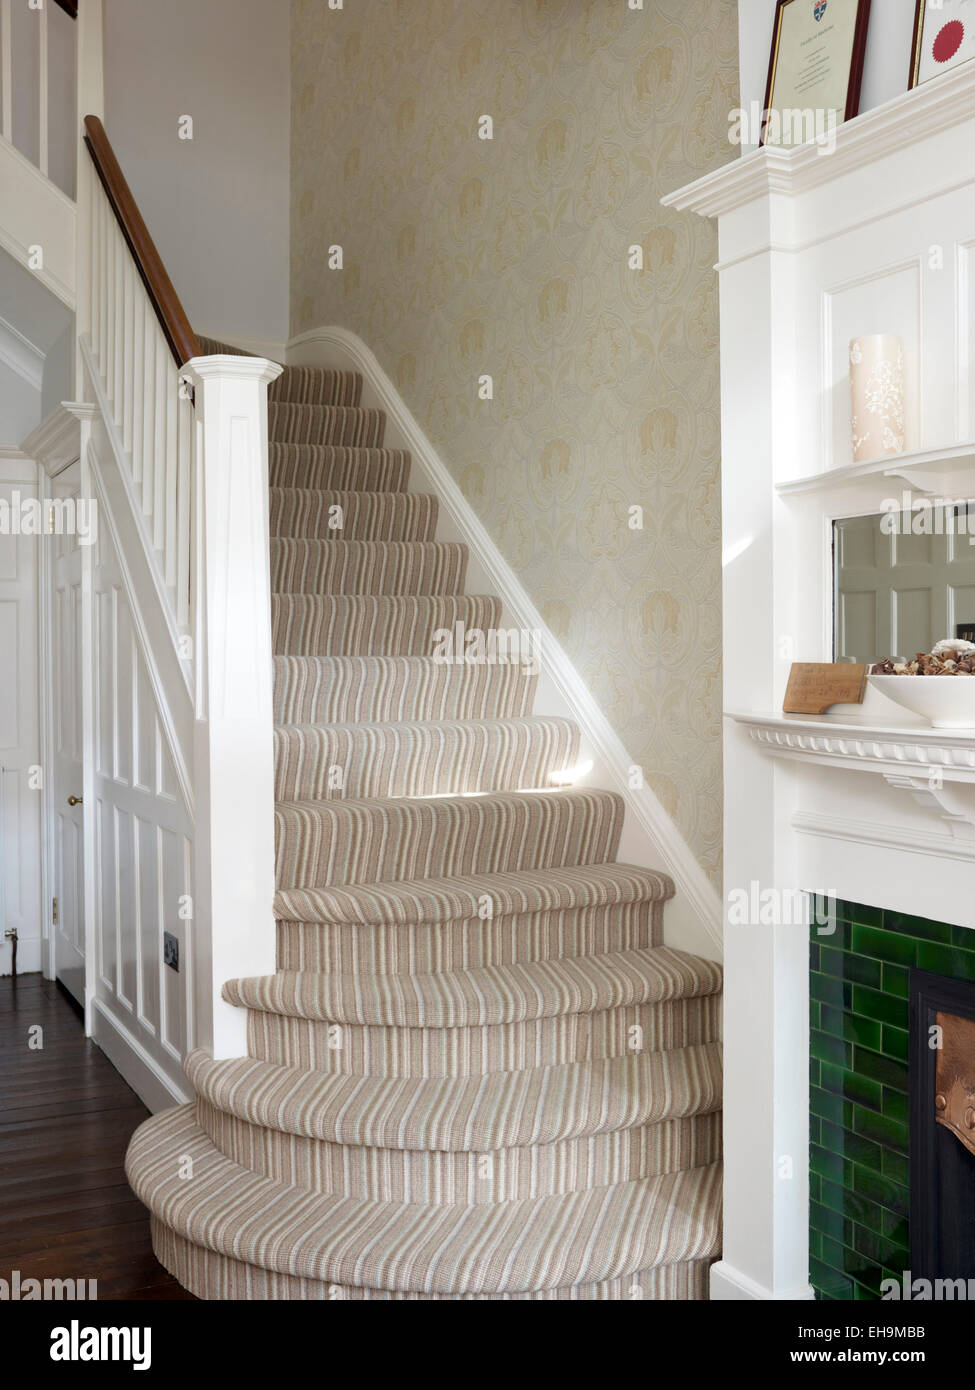 Staircase leading up from entrance hall, residential house, Kingsmead, UK - Stock Image